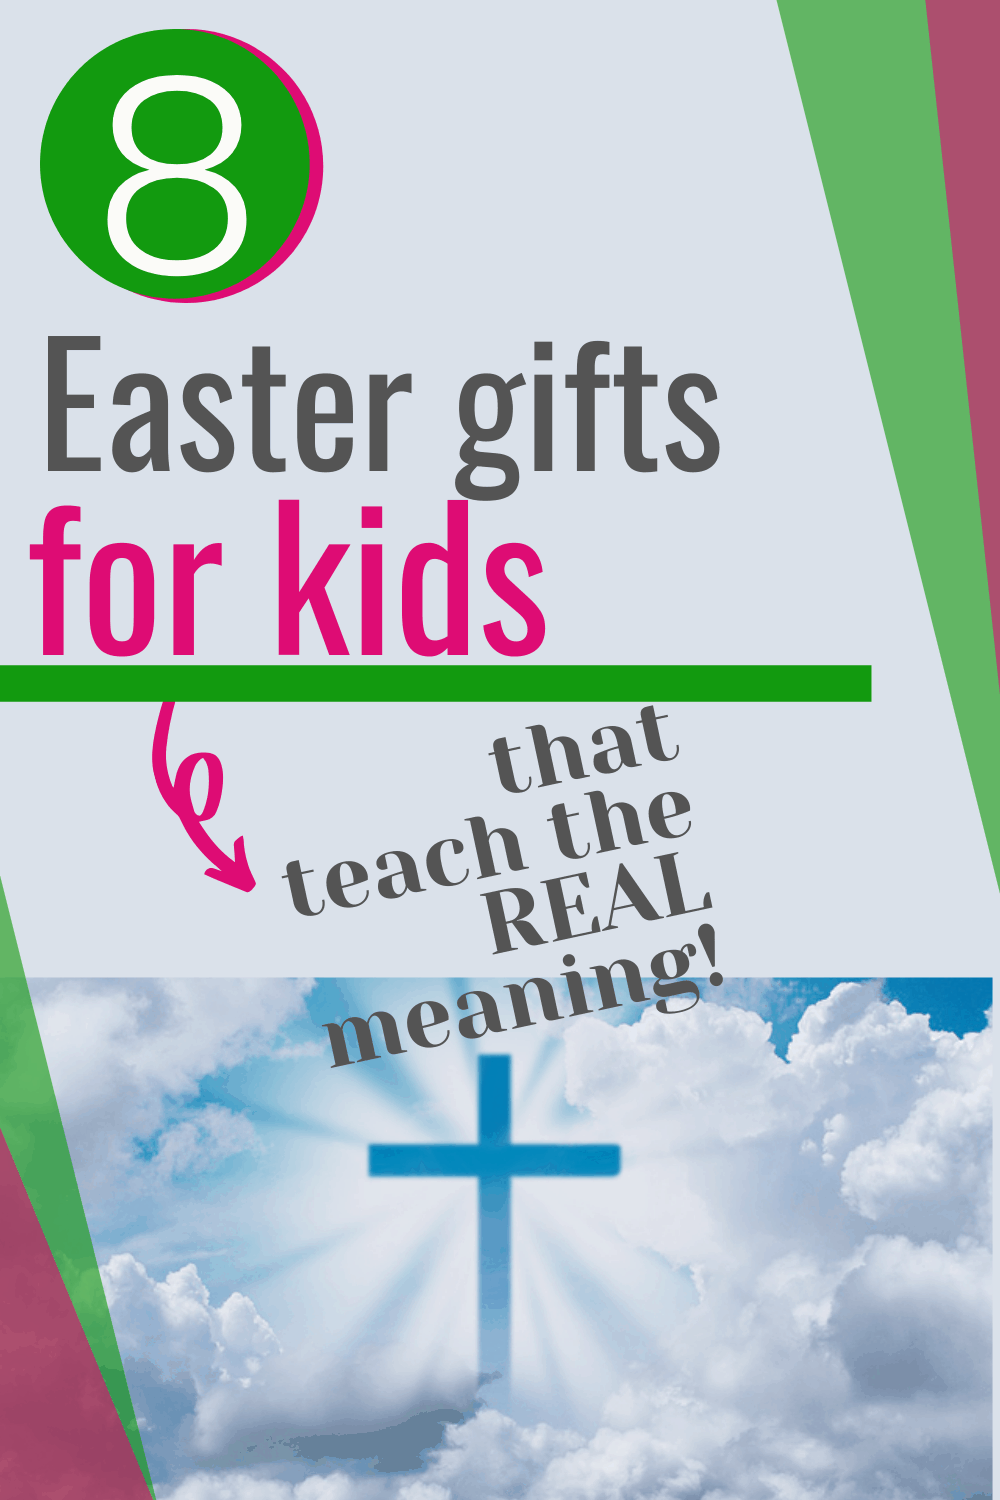 Christian Easter gifts for kids